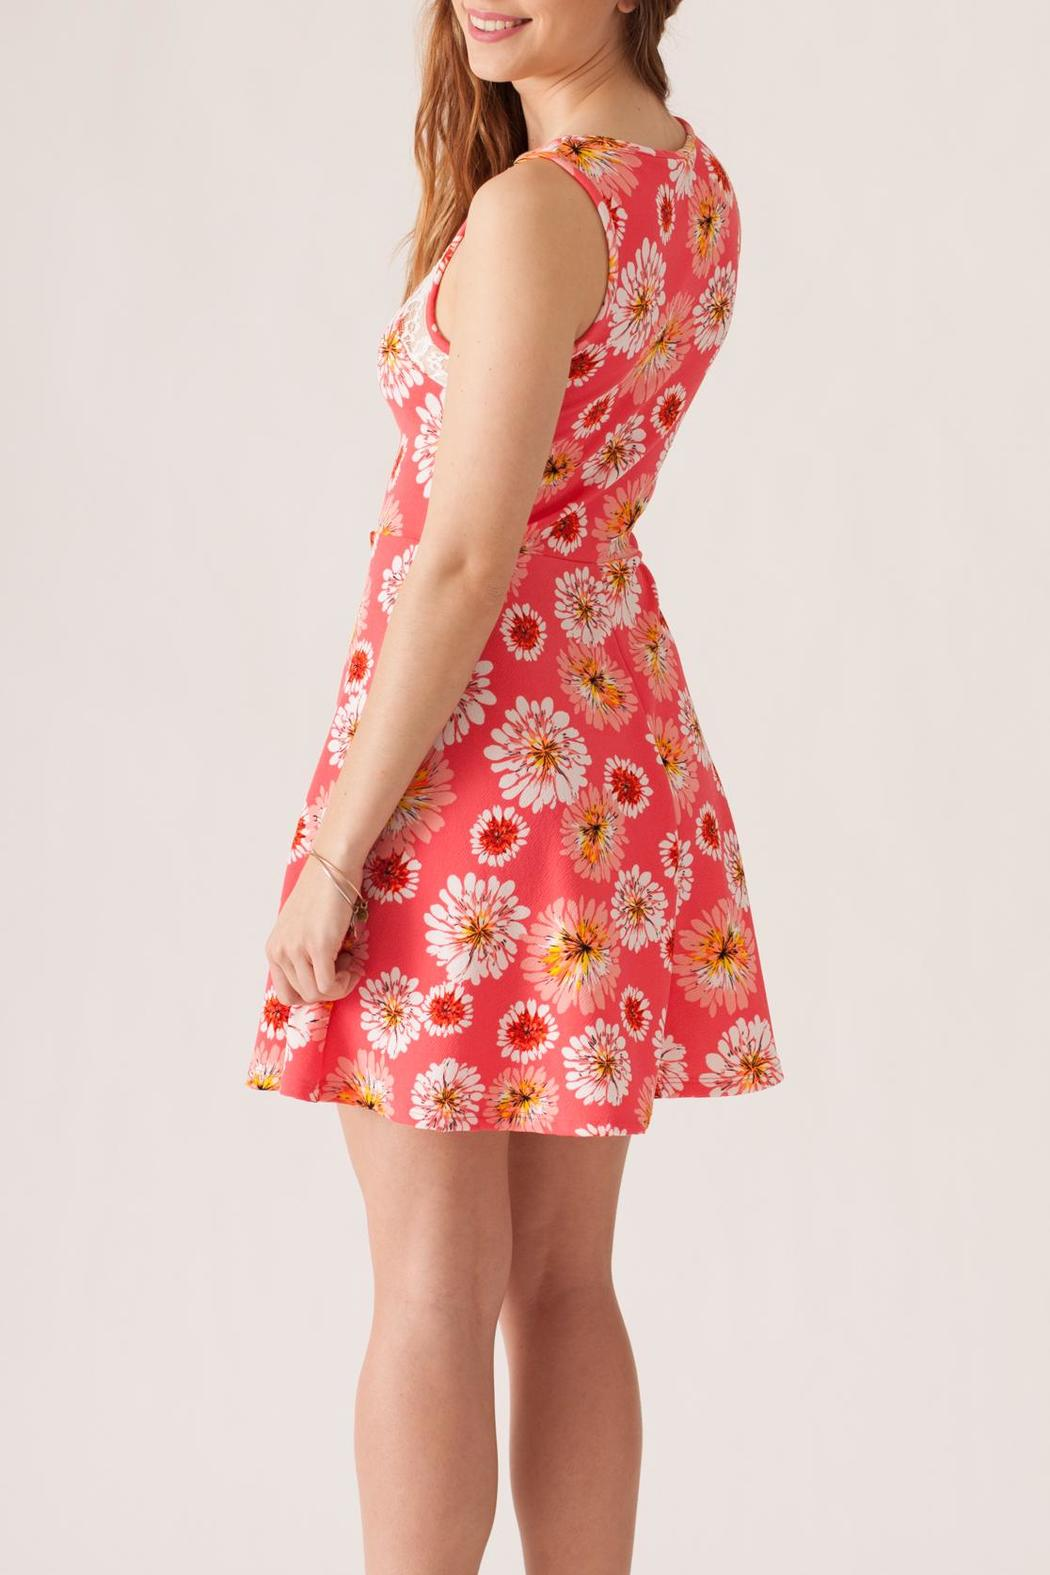 Stylebook Floral Print Dress - Back Cropped Image